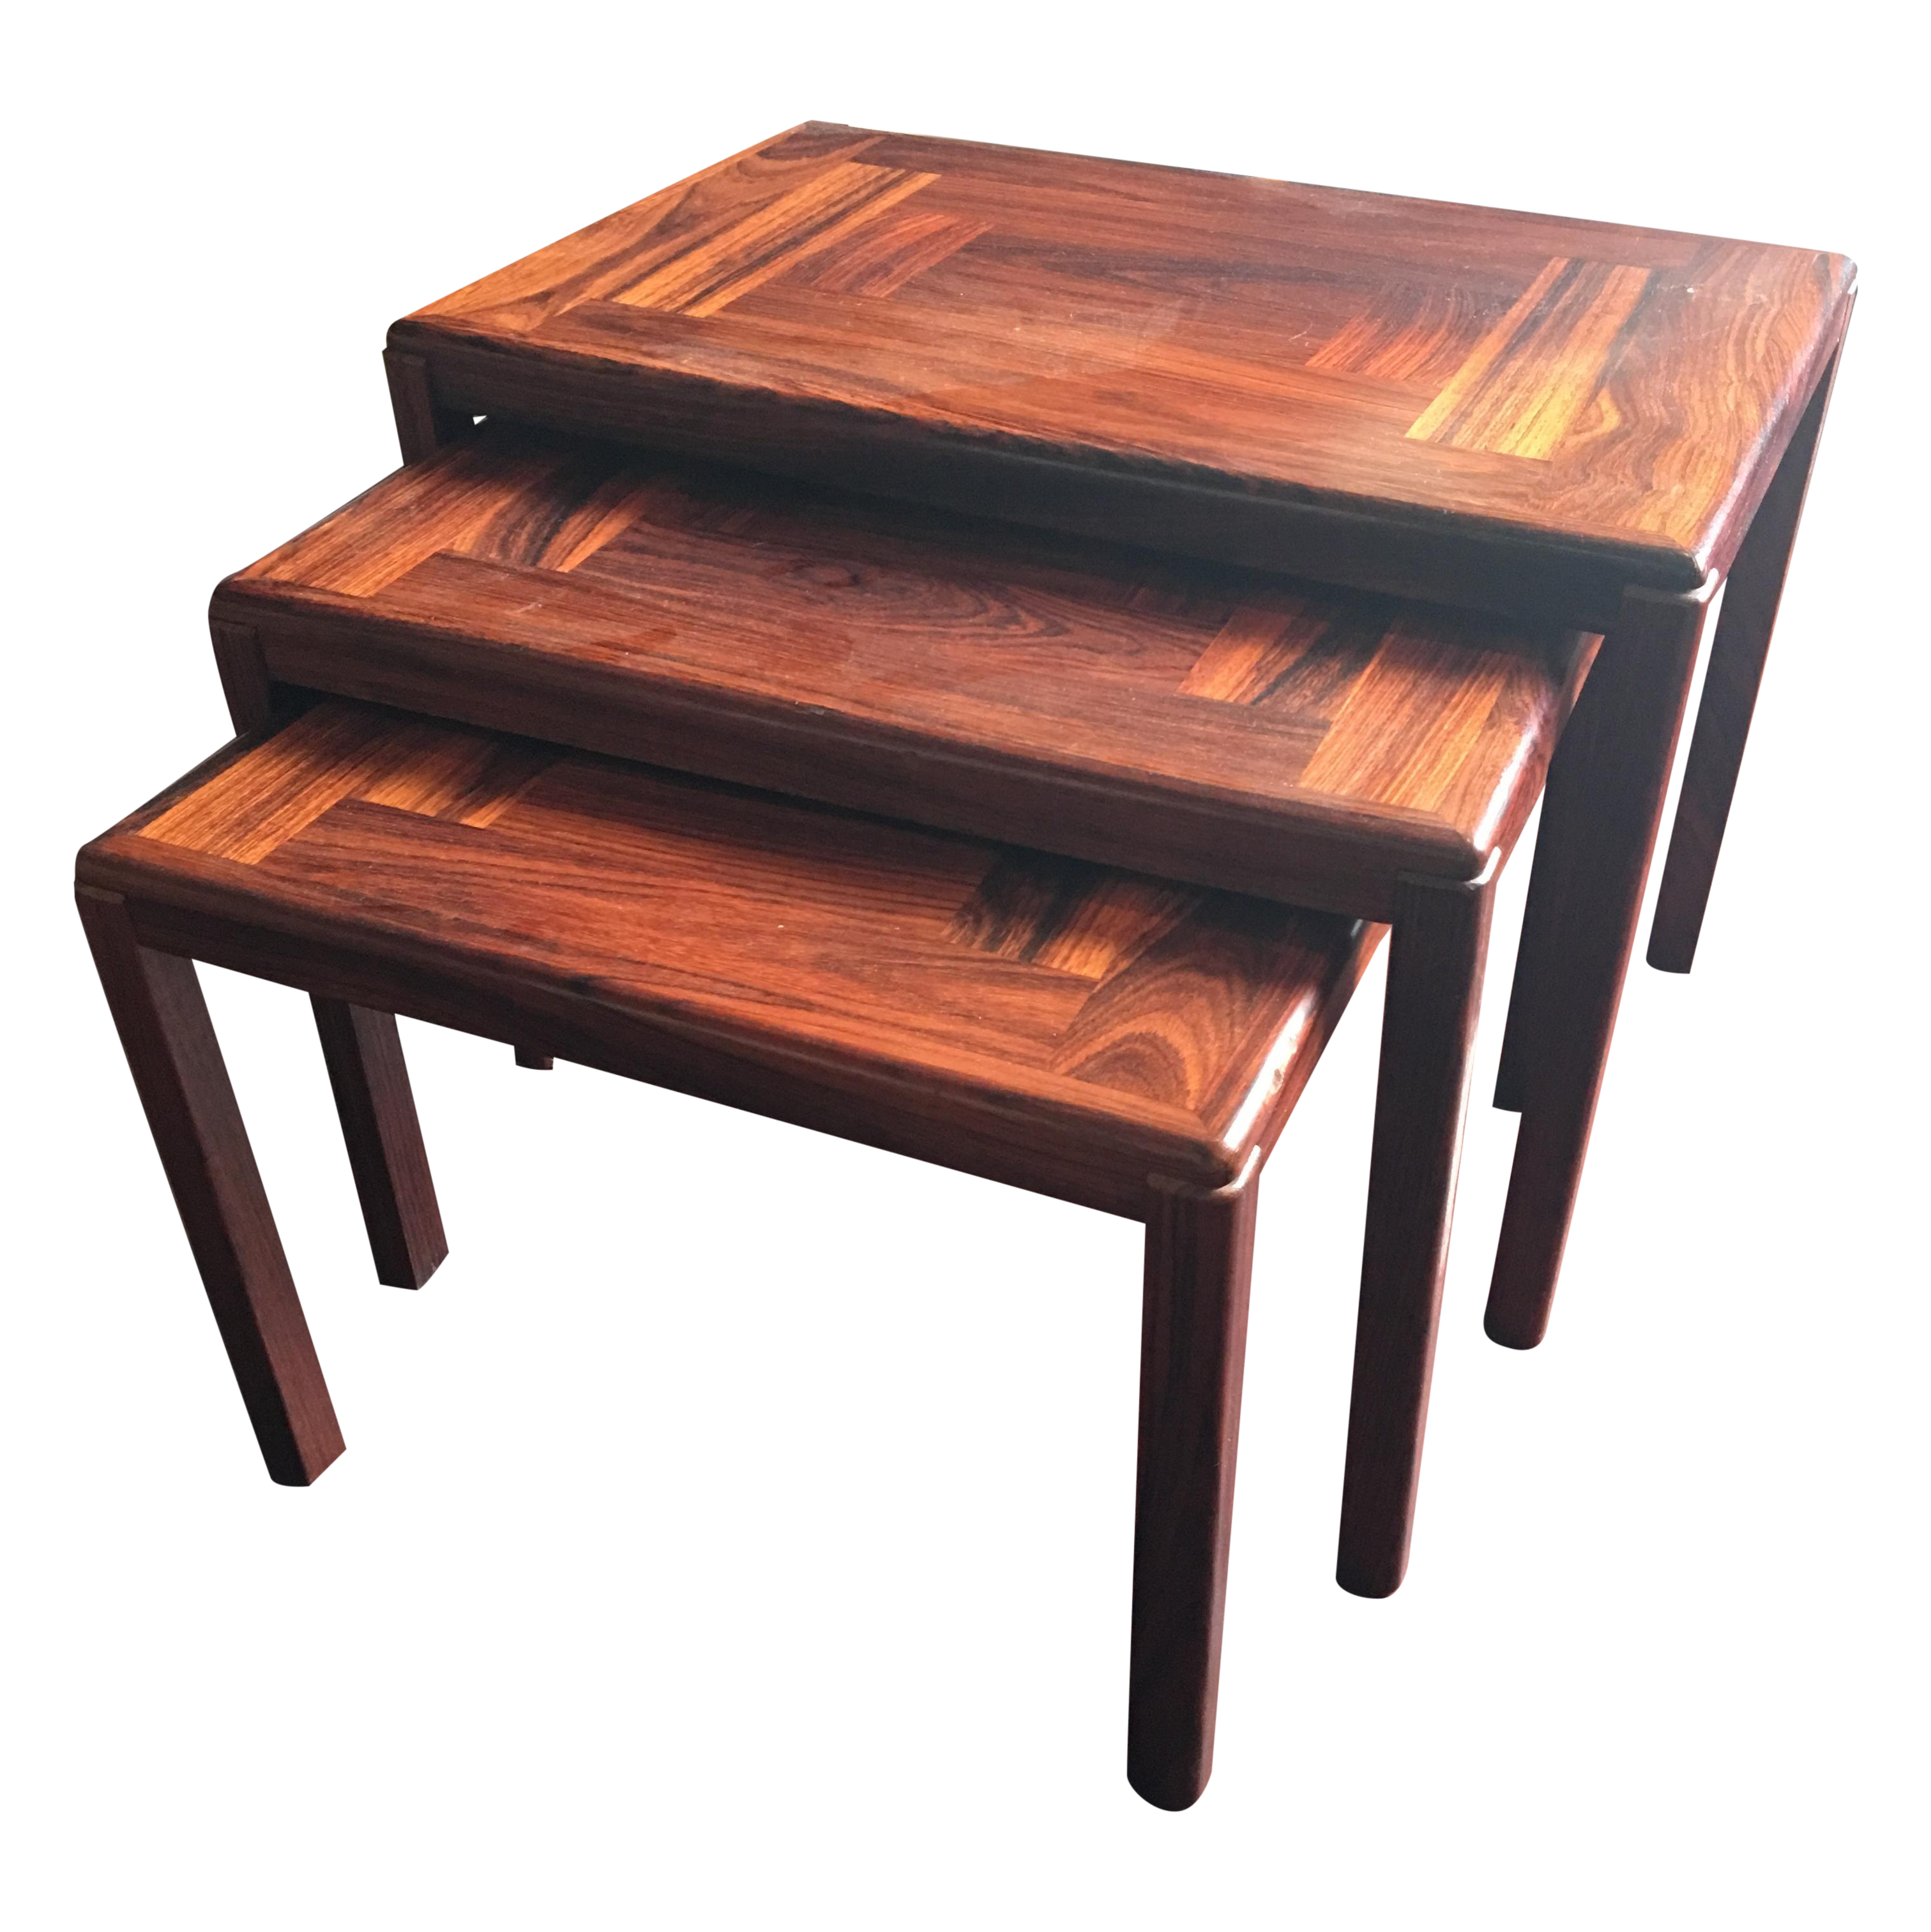 Modern Danish Nesting Tables Chairish. Full resolution  image, nominally Width 3024 Height 3025 pixels, image with #BB5910.